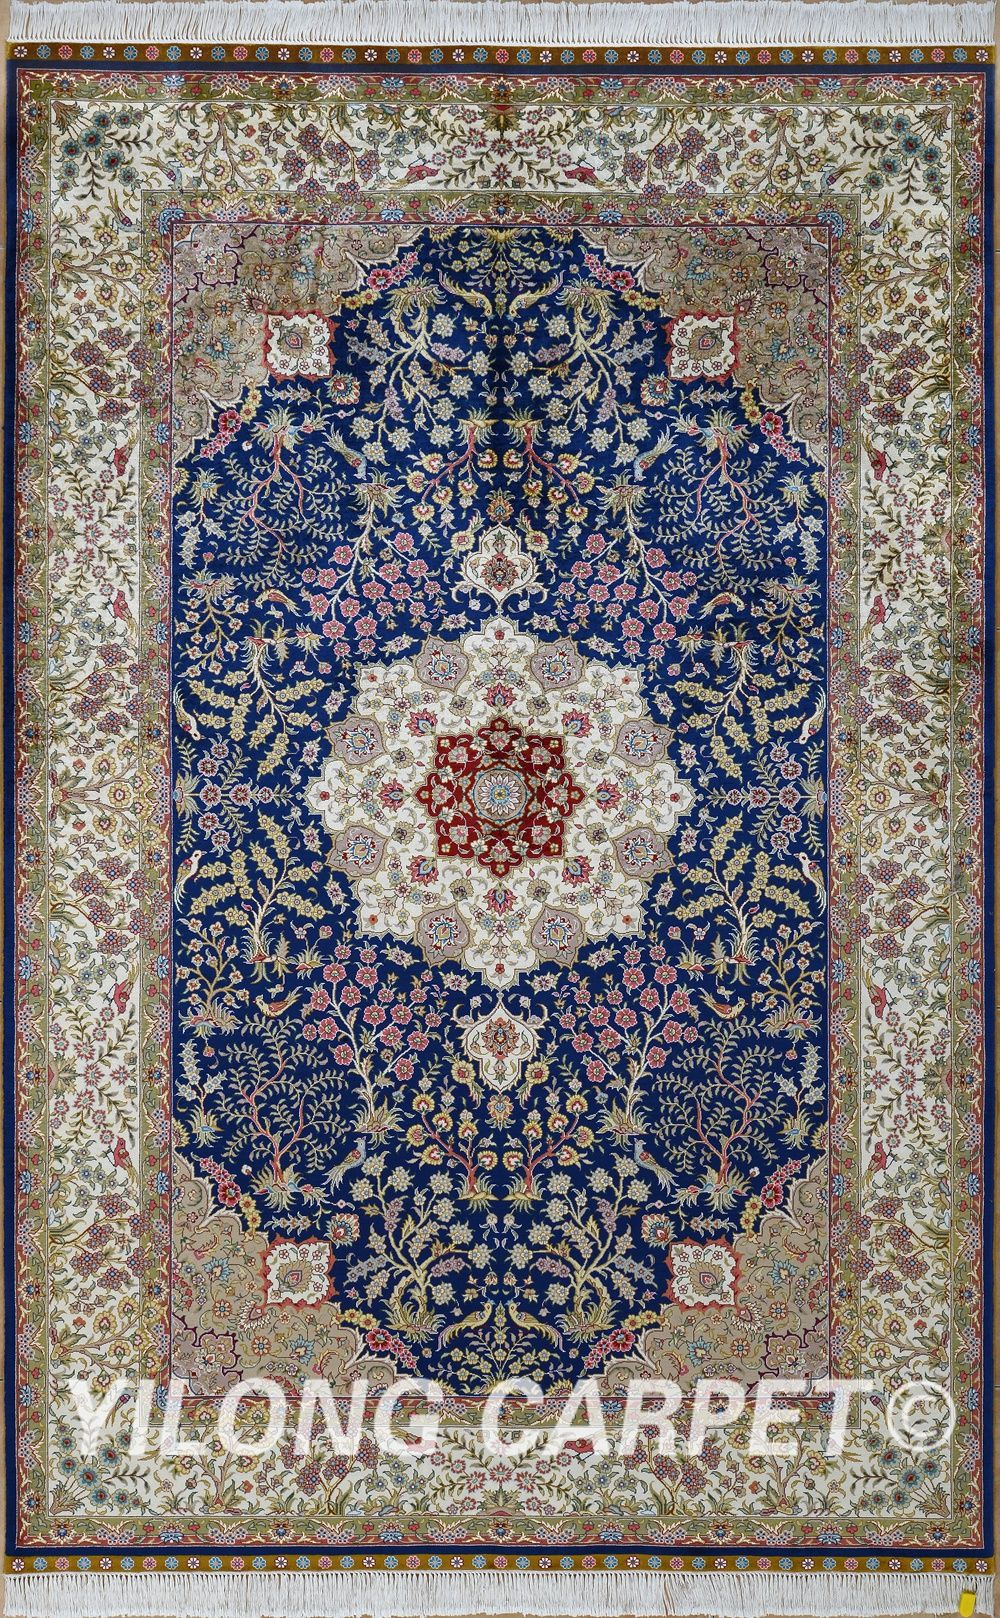 Blue Used Persian Rug For Cyrus Carpets Materials Silk Dyeing Vegetable Technology Hand Knotted Size 2 X3 14 X20 Fit Bedroom